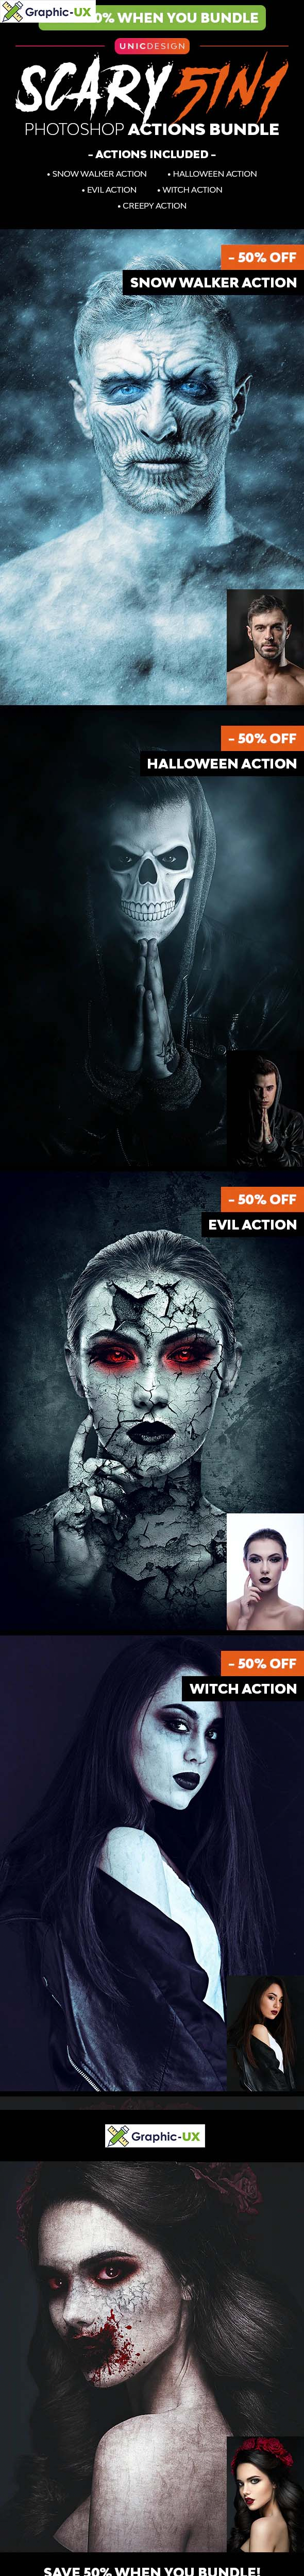 Scary Photoshop Actions 5in1 Bundle